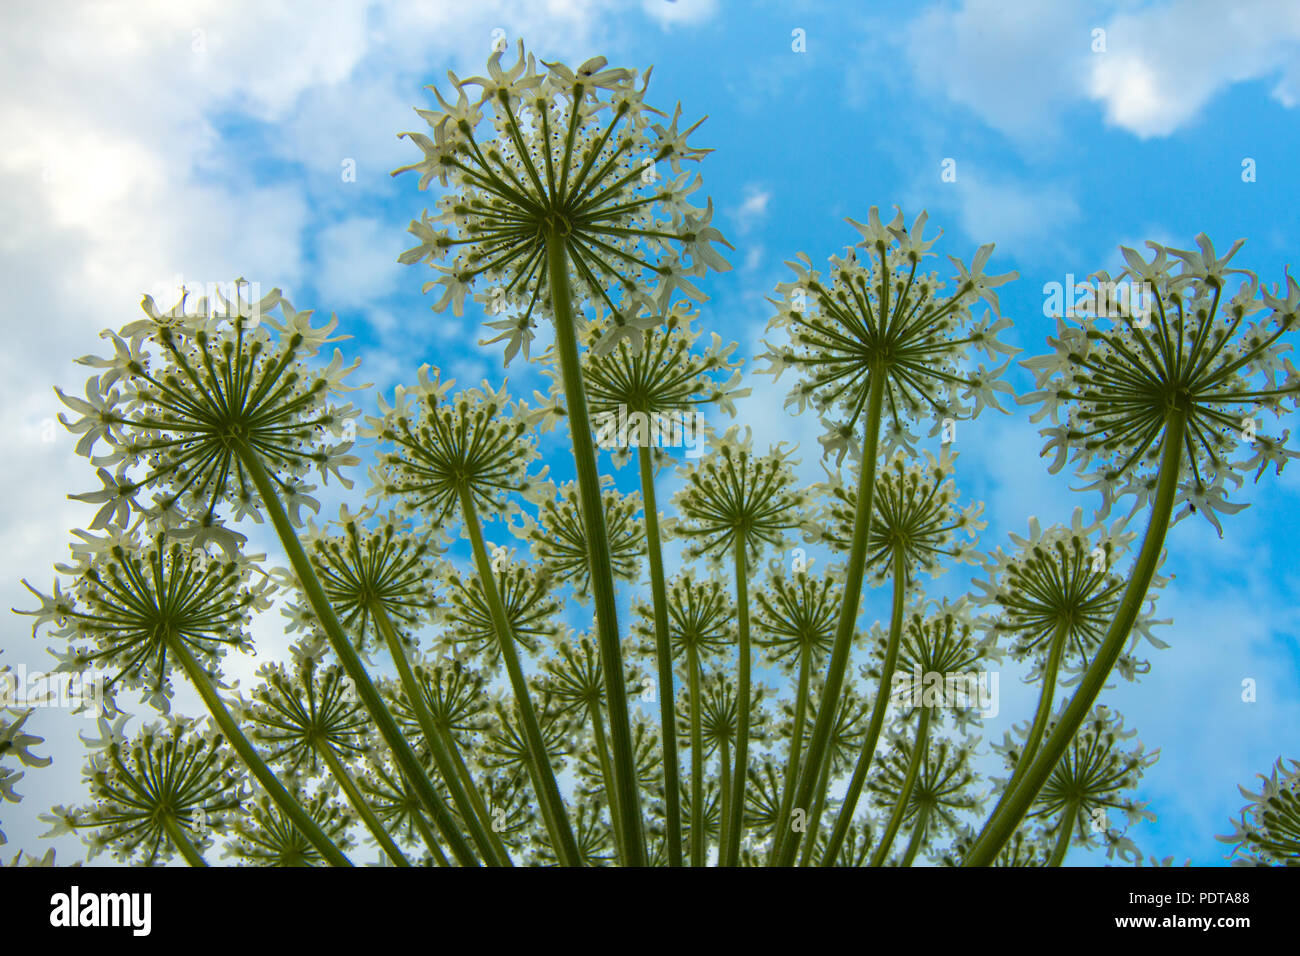 Looking up from underneath giant daisies - Stock Image